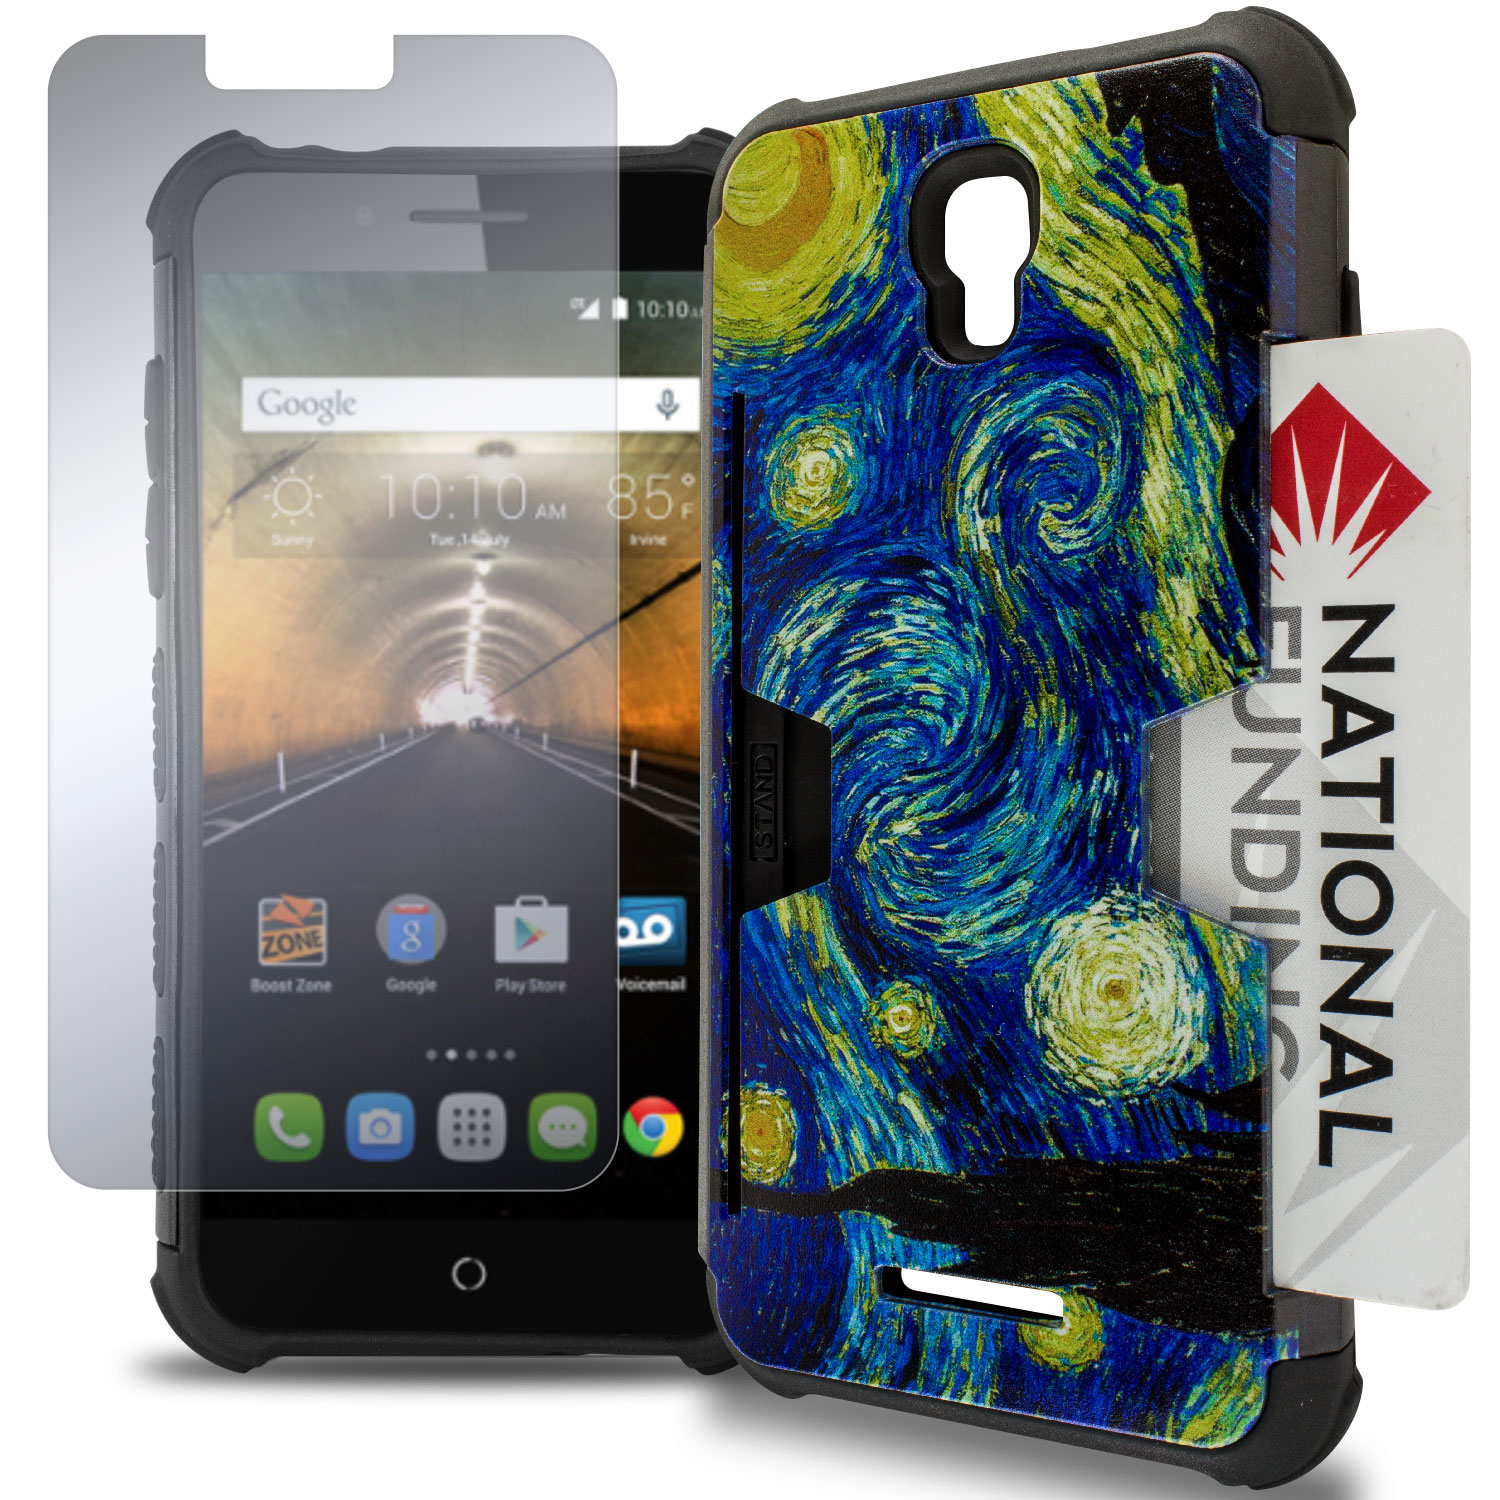 Card design hybrid phone cover case for alcatel one touch